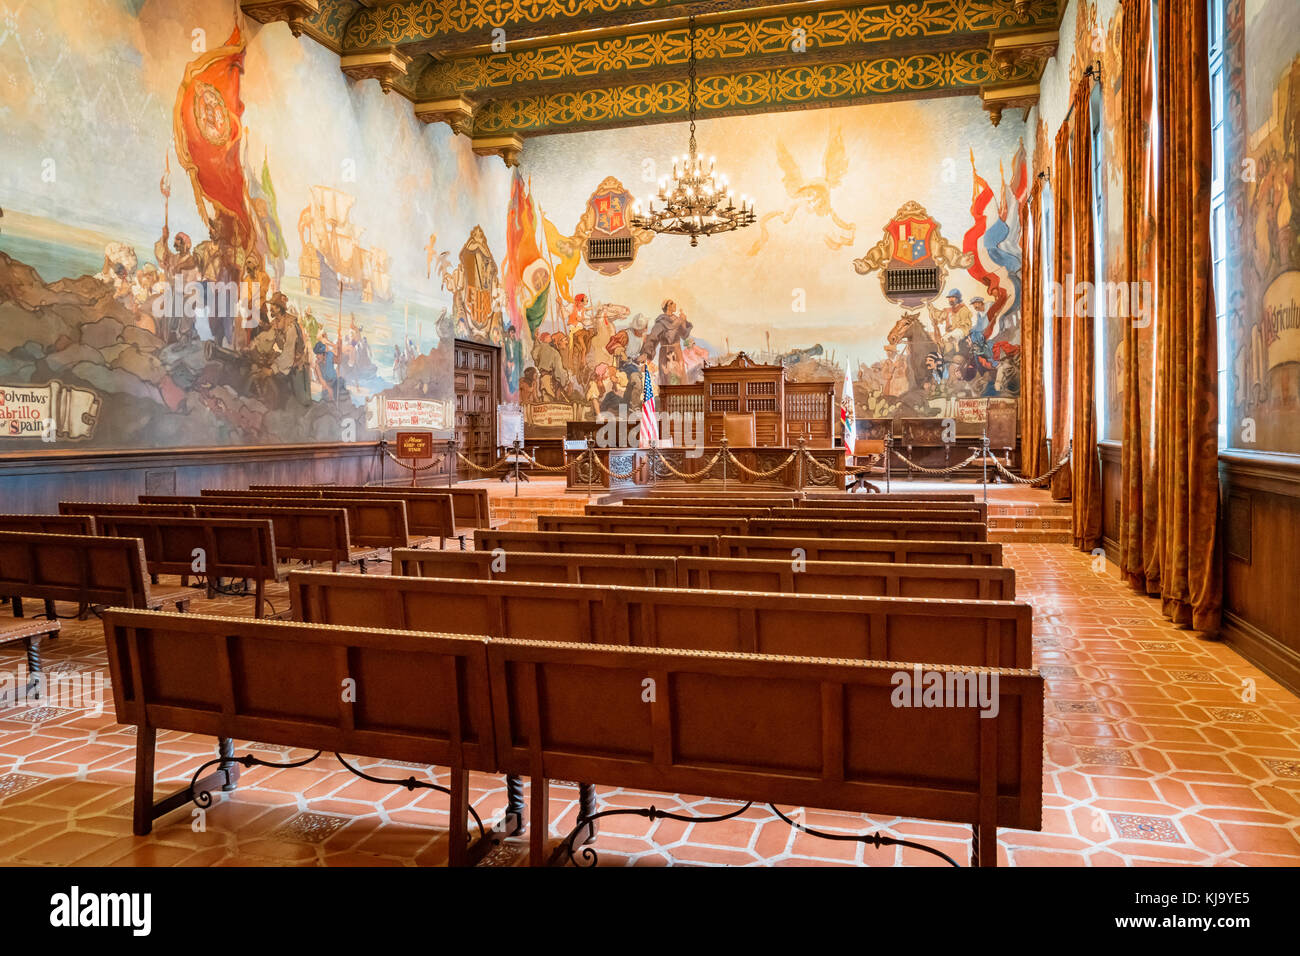 Courtroom interior stock photos courtroom interior stock for Mural room santa barbara